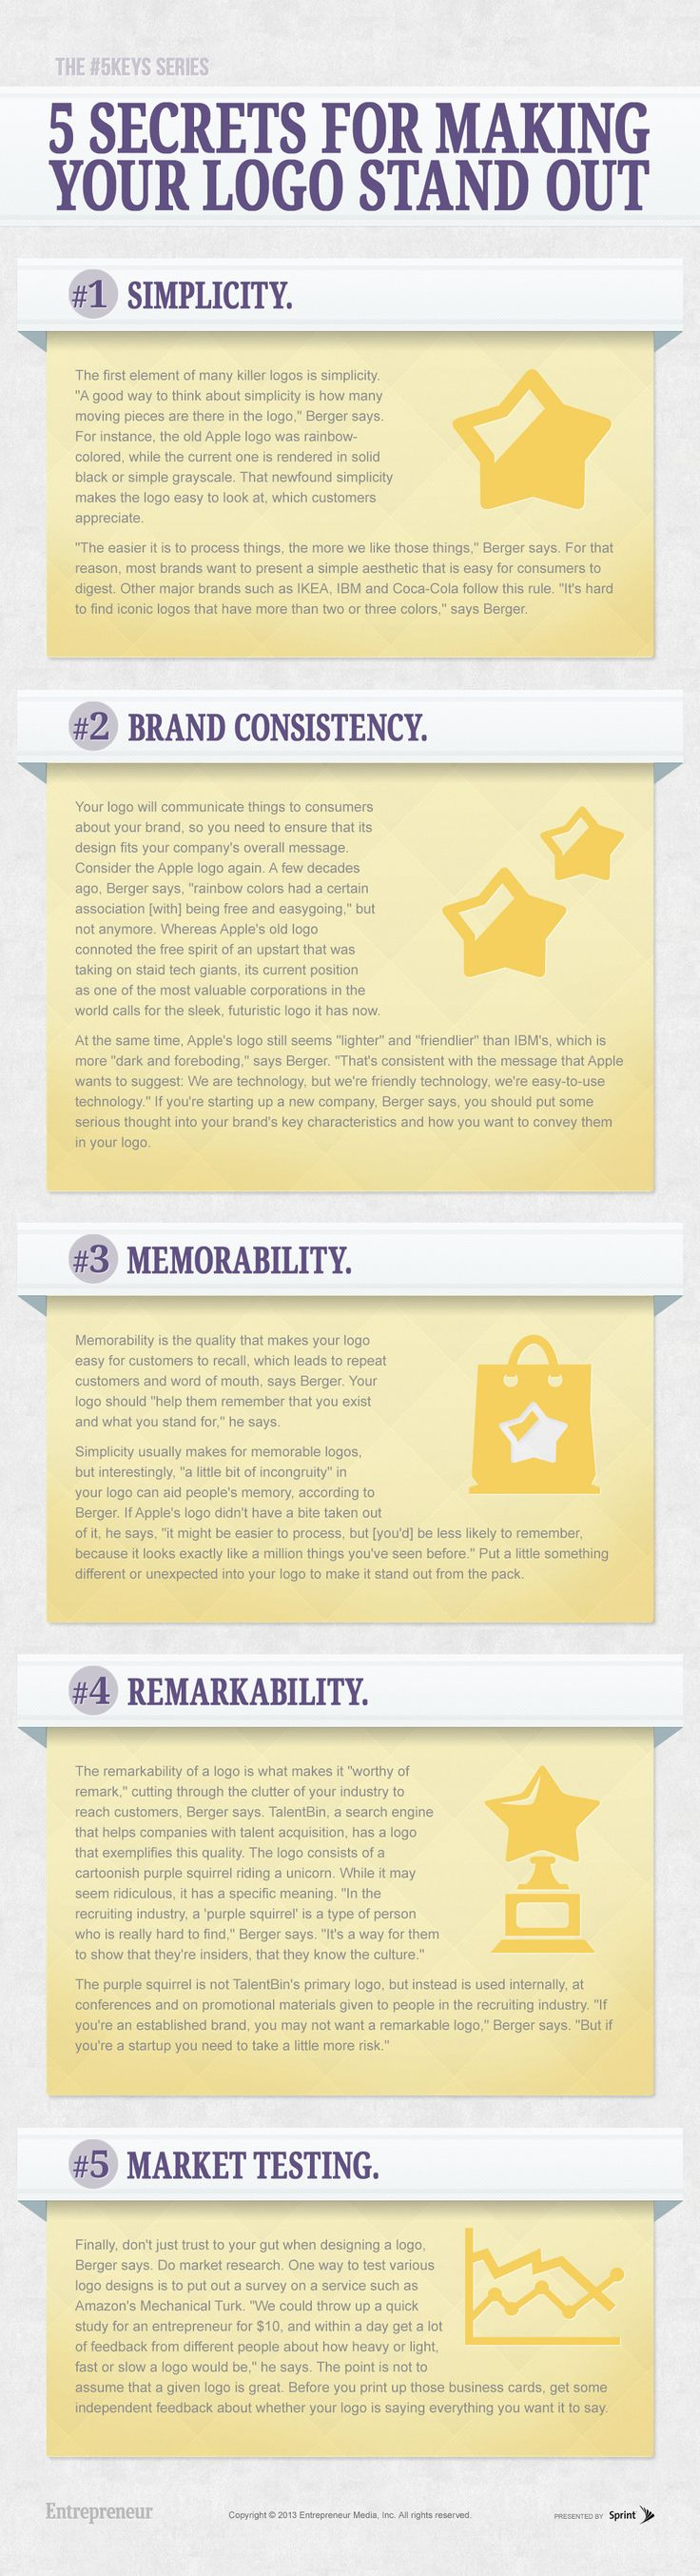 5 Secrets for Making Your Logo Stand Out #Infographic